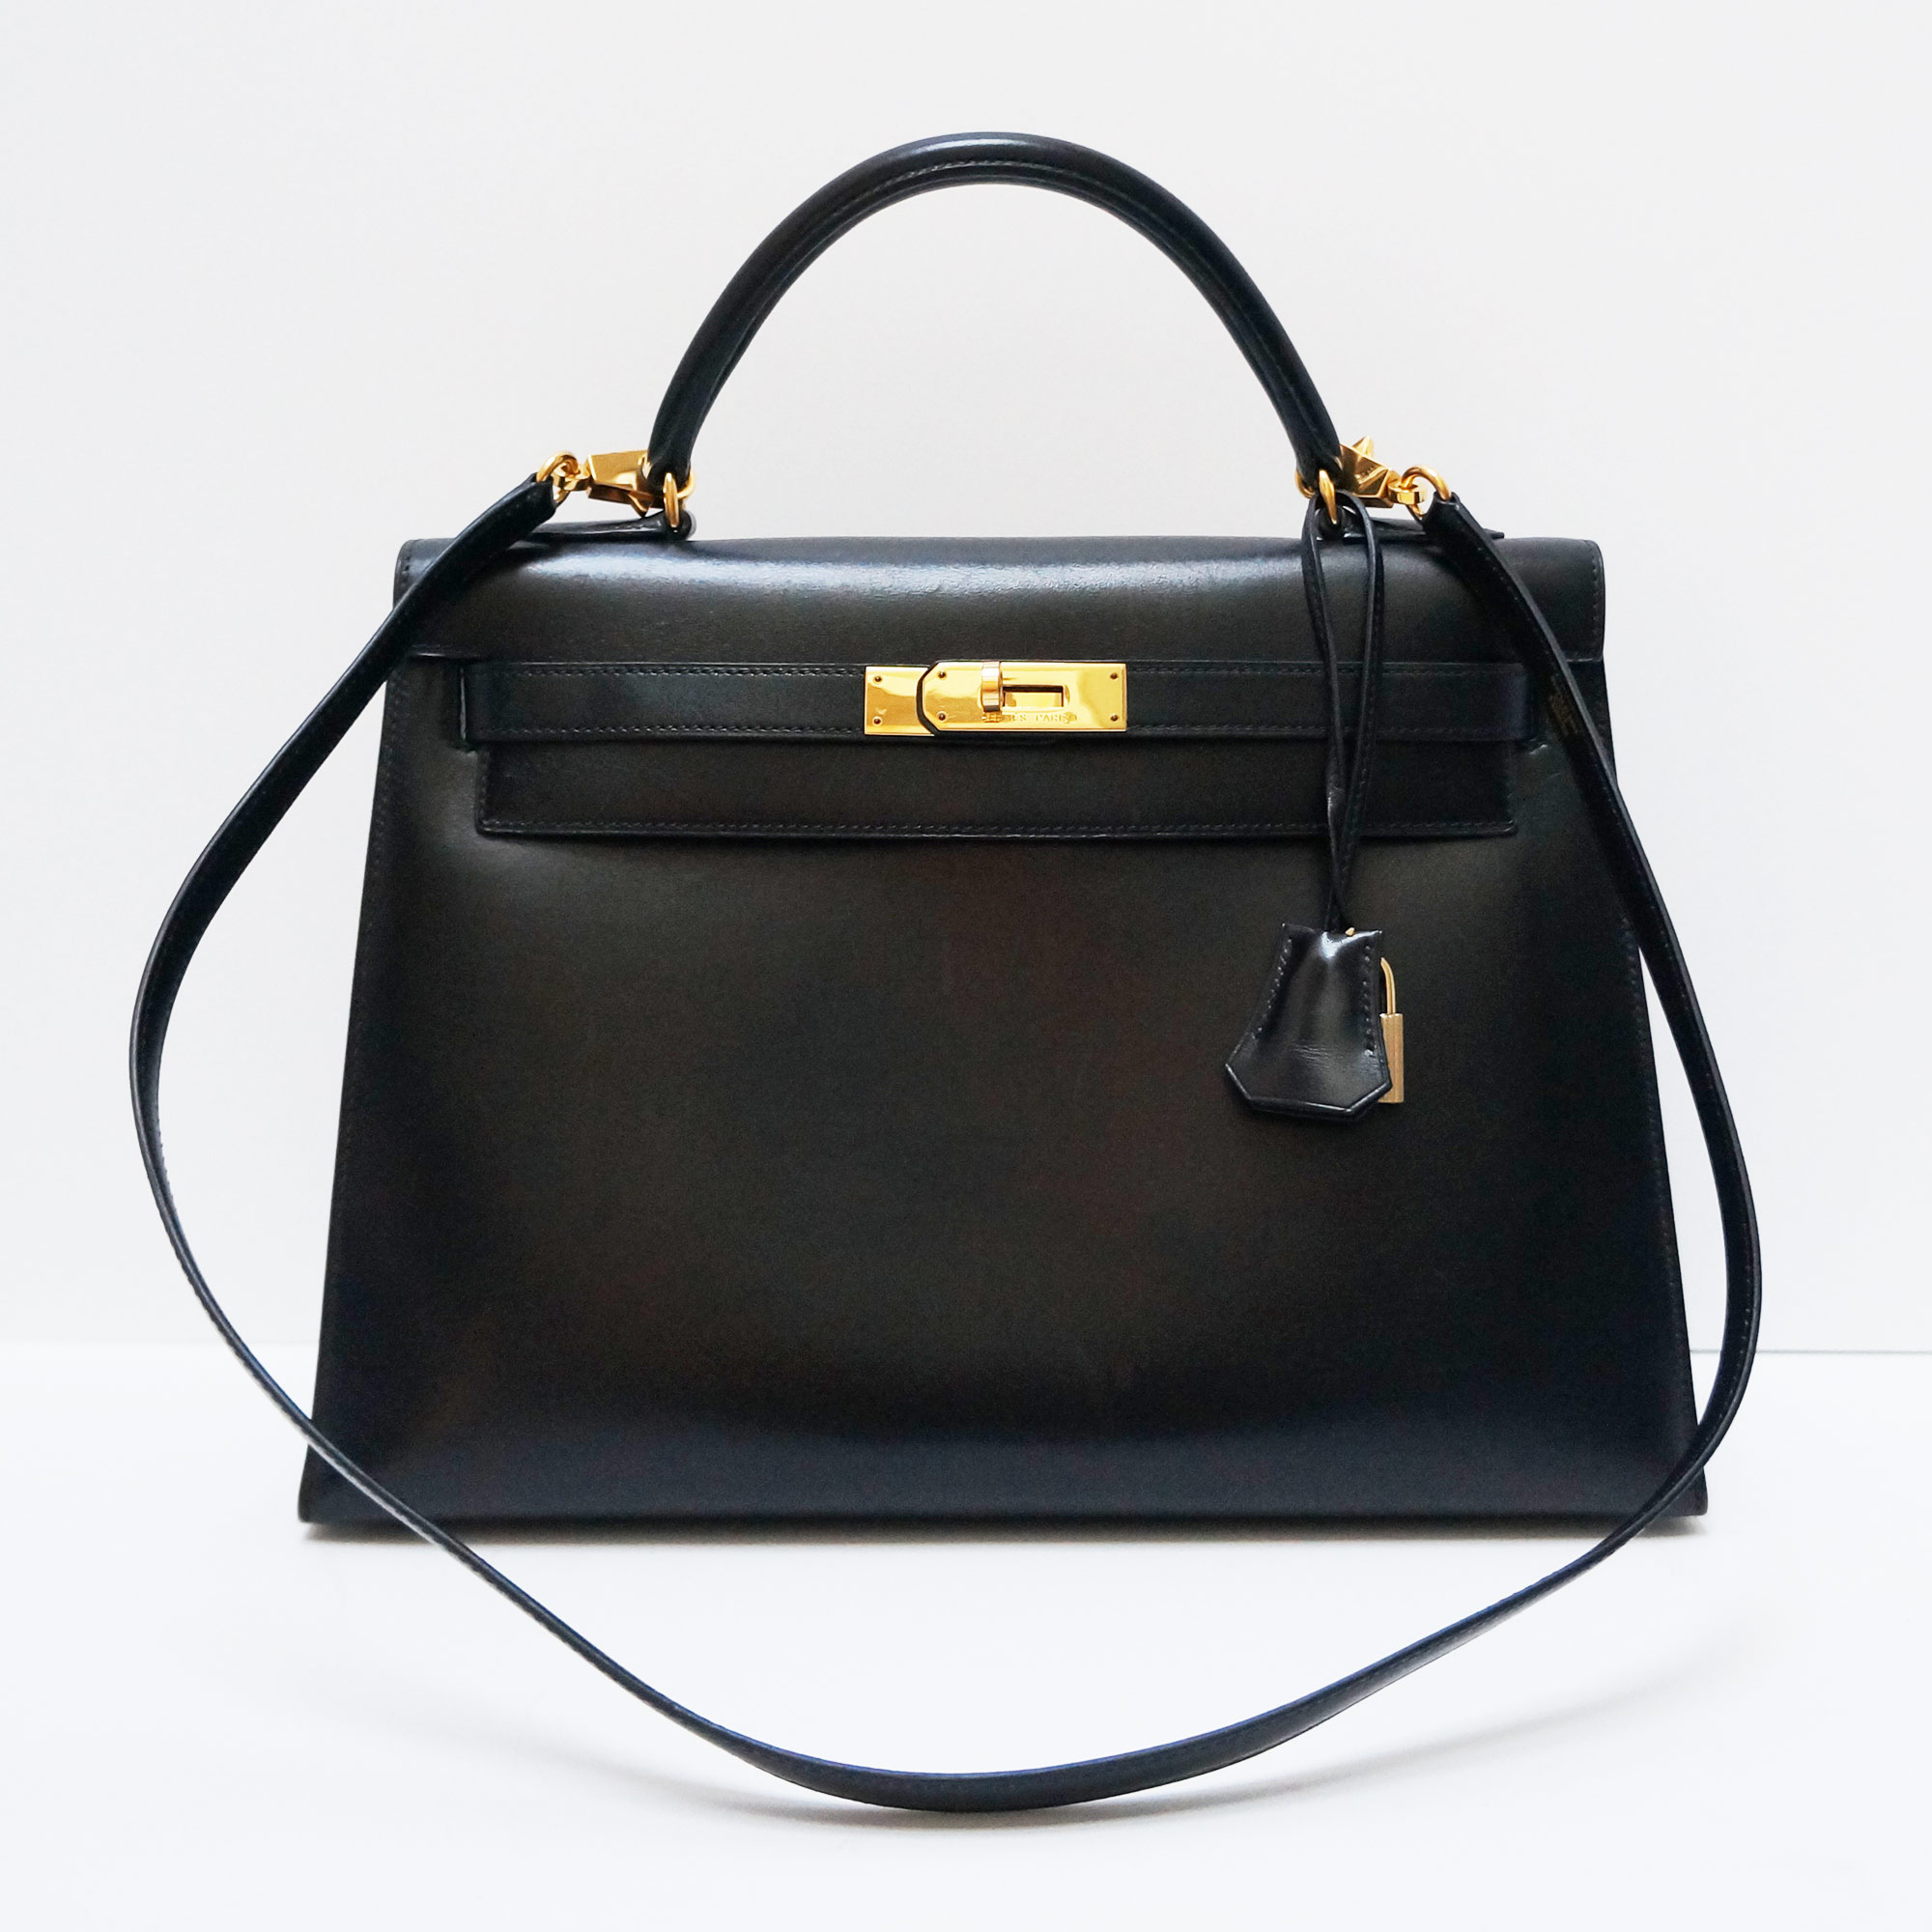 2267395cb321 Hermes Vintage Sellier Kelly 32cm Bag Black Box Leather Gold ...